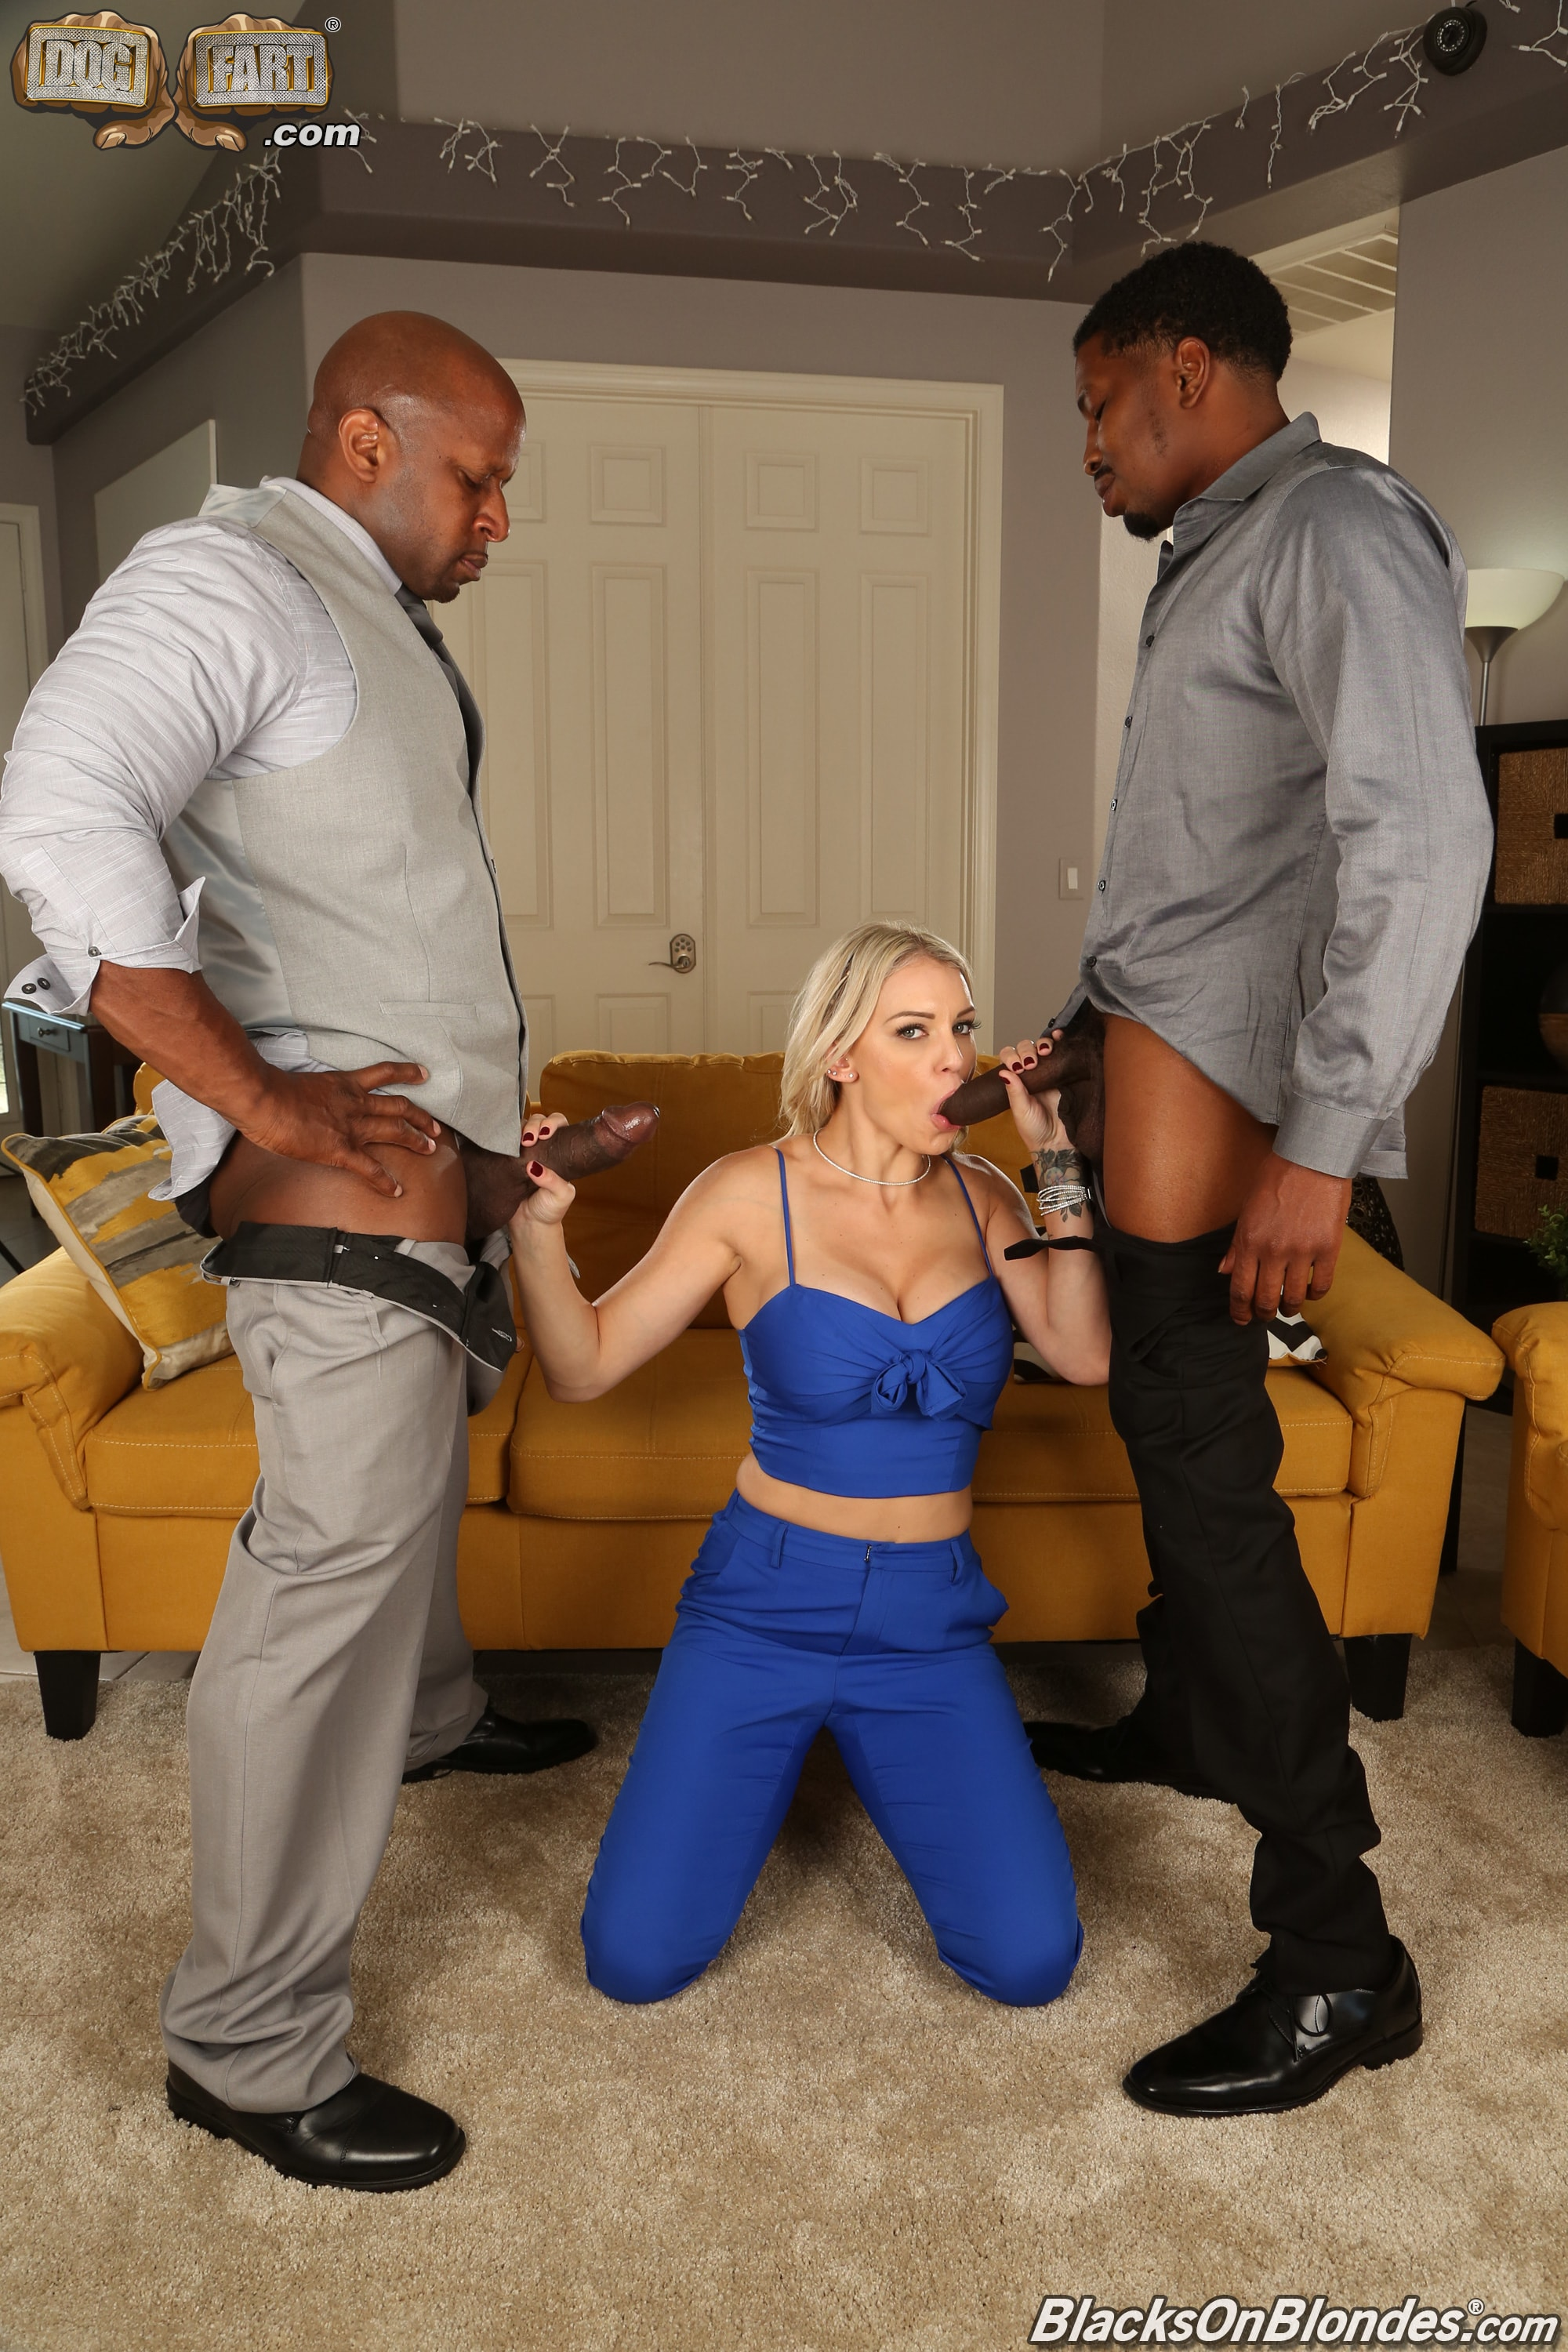 Dogfart '- Blacks On Blondes - Scene 2' starring Kenzie Taylor (Photo 6)